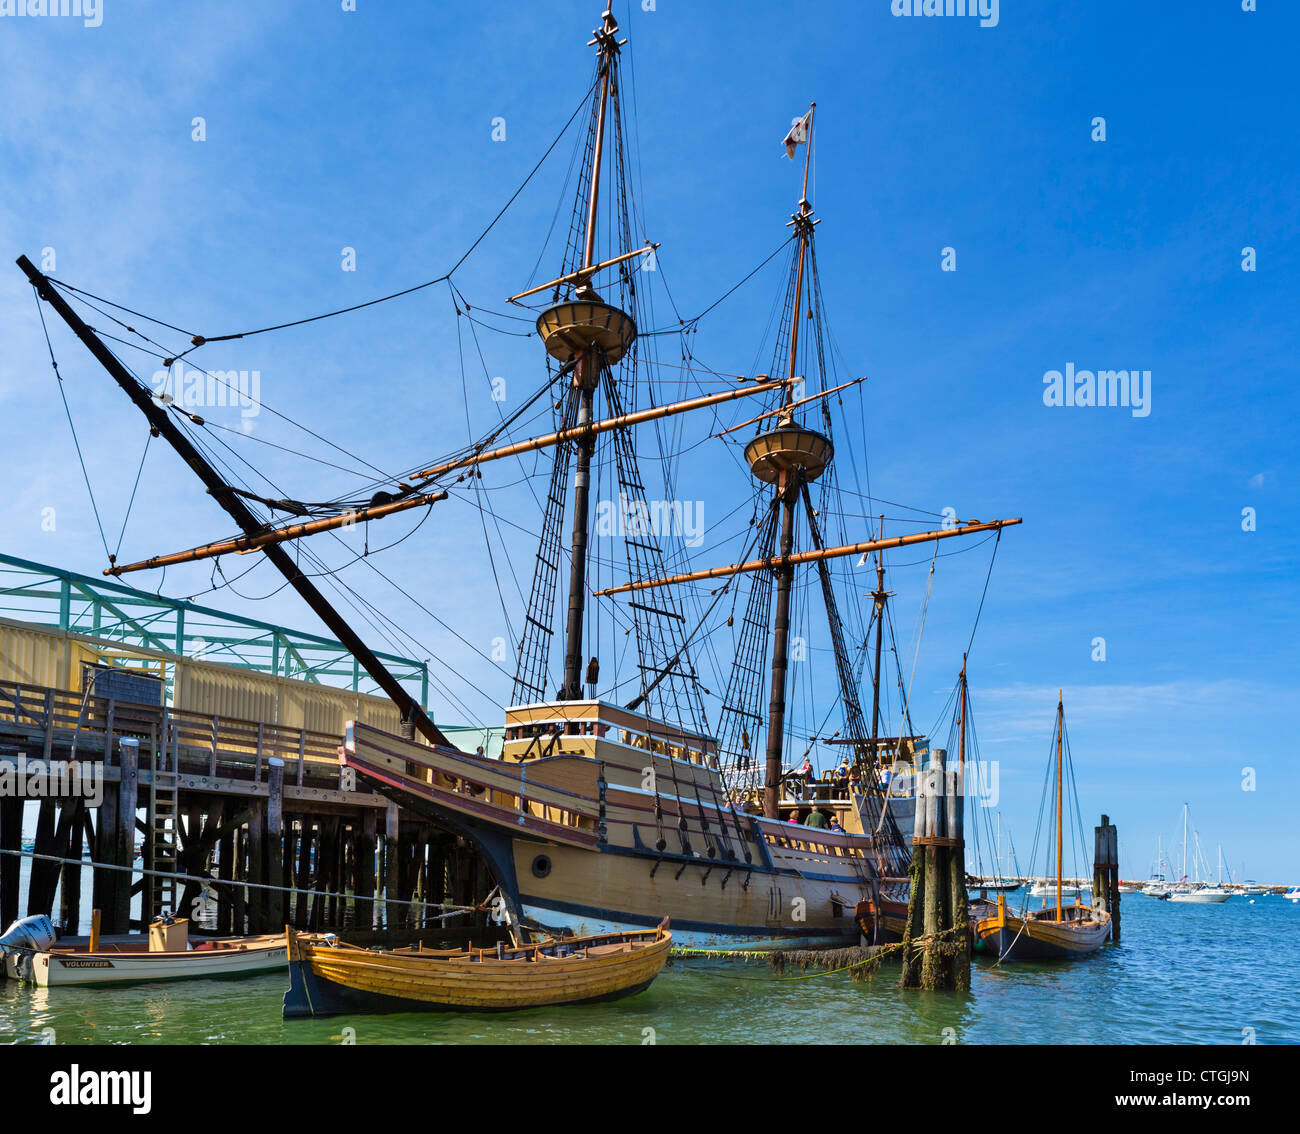 The Mayflower II, a replica of the original Mayflower, State Pier, Plymouth, Massachusetts, USA - Stock Image